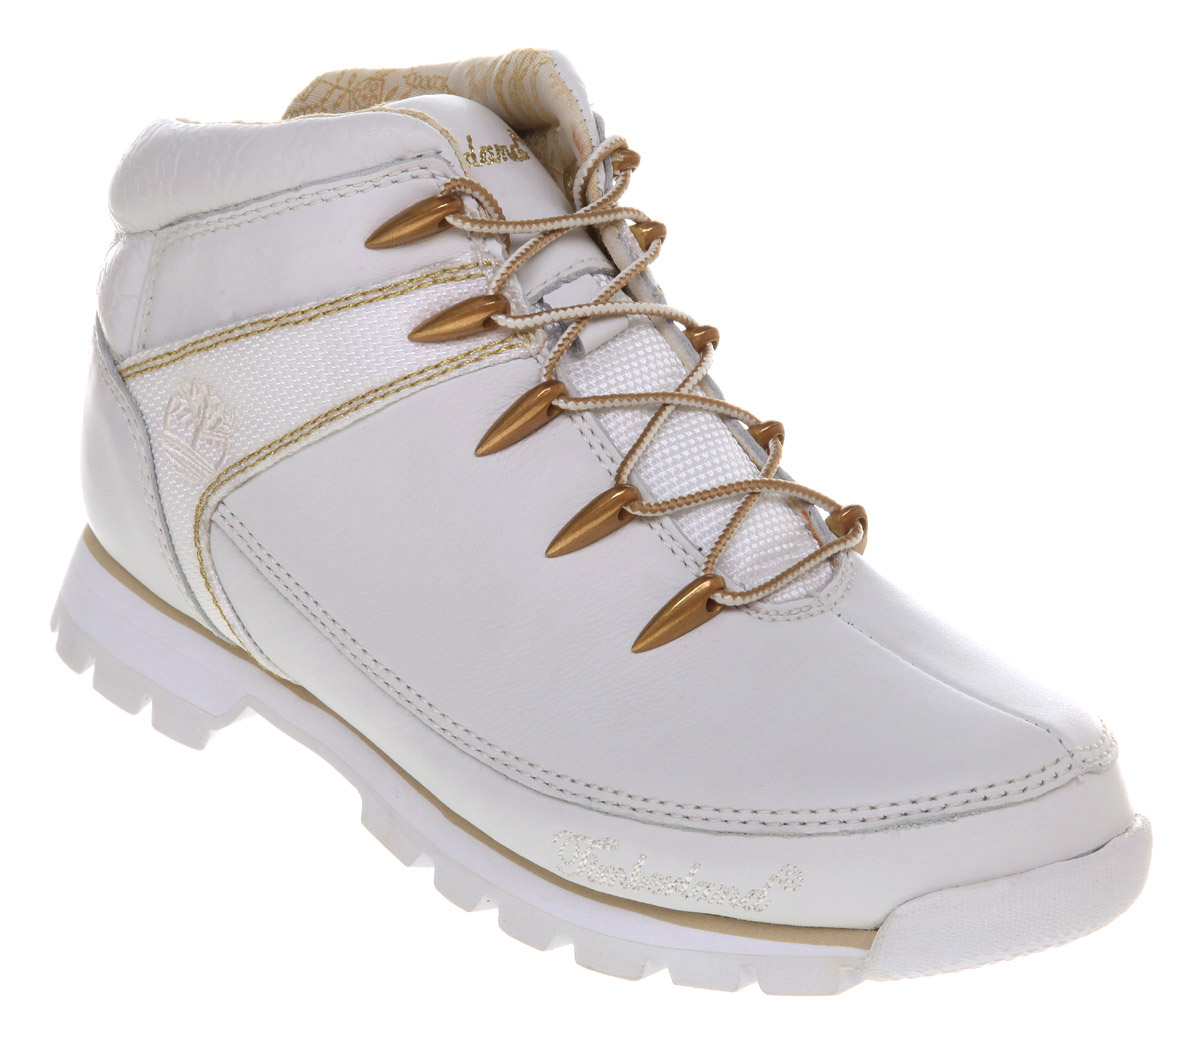 mens timberland eurosprint white leather boots ebay